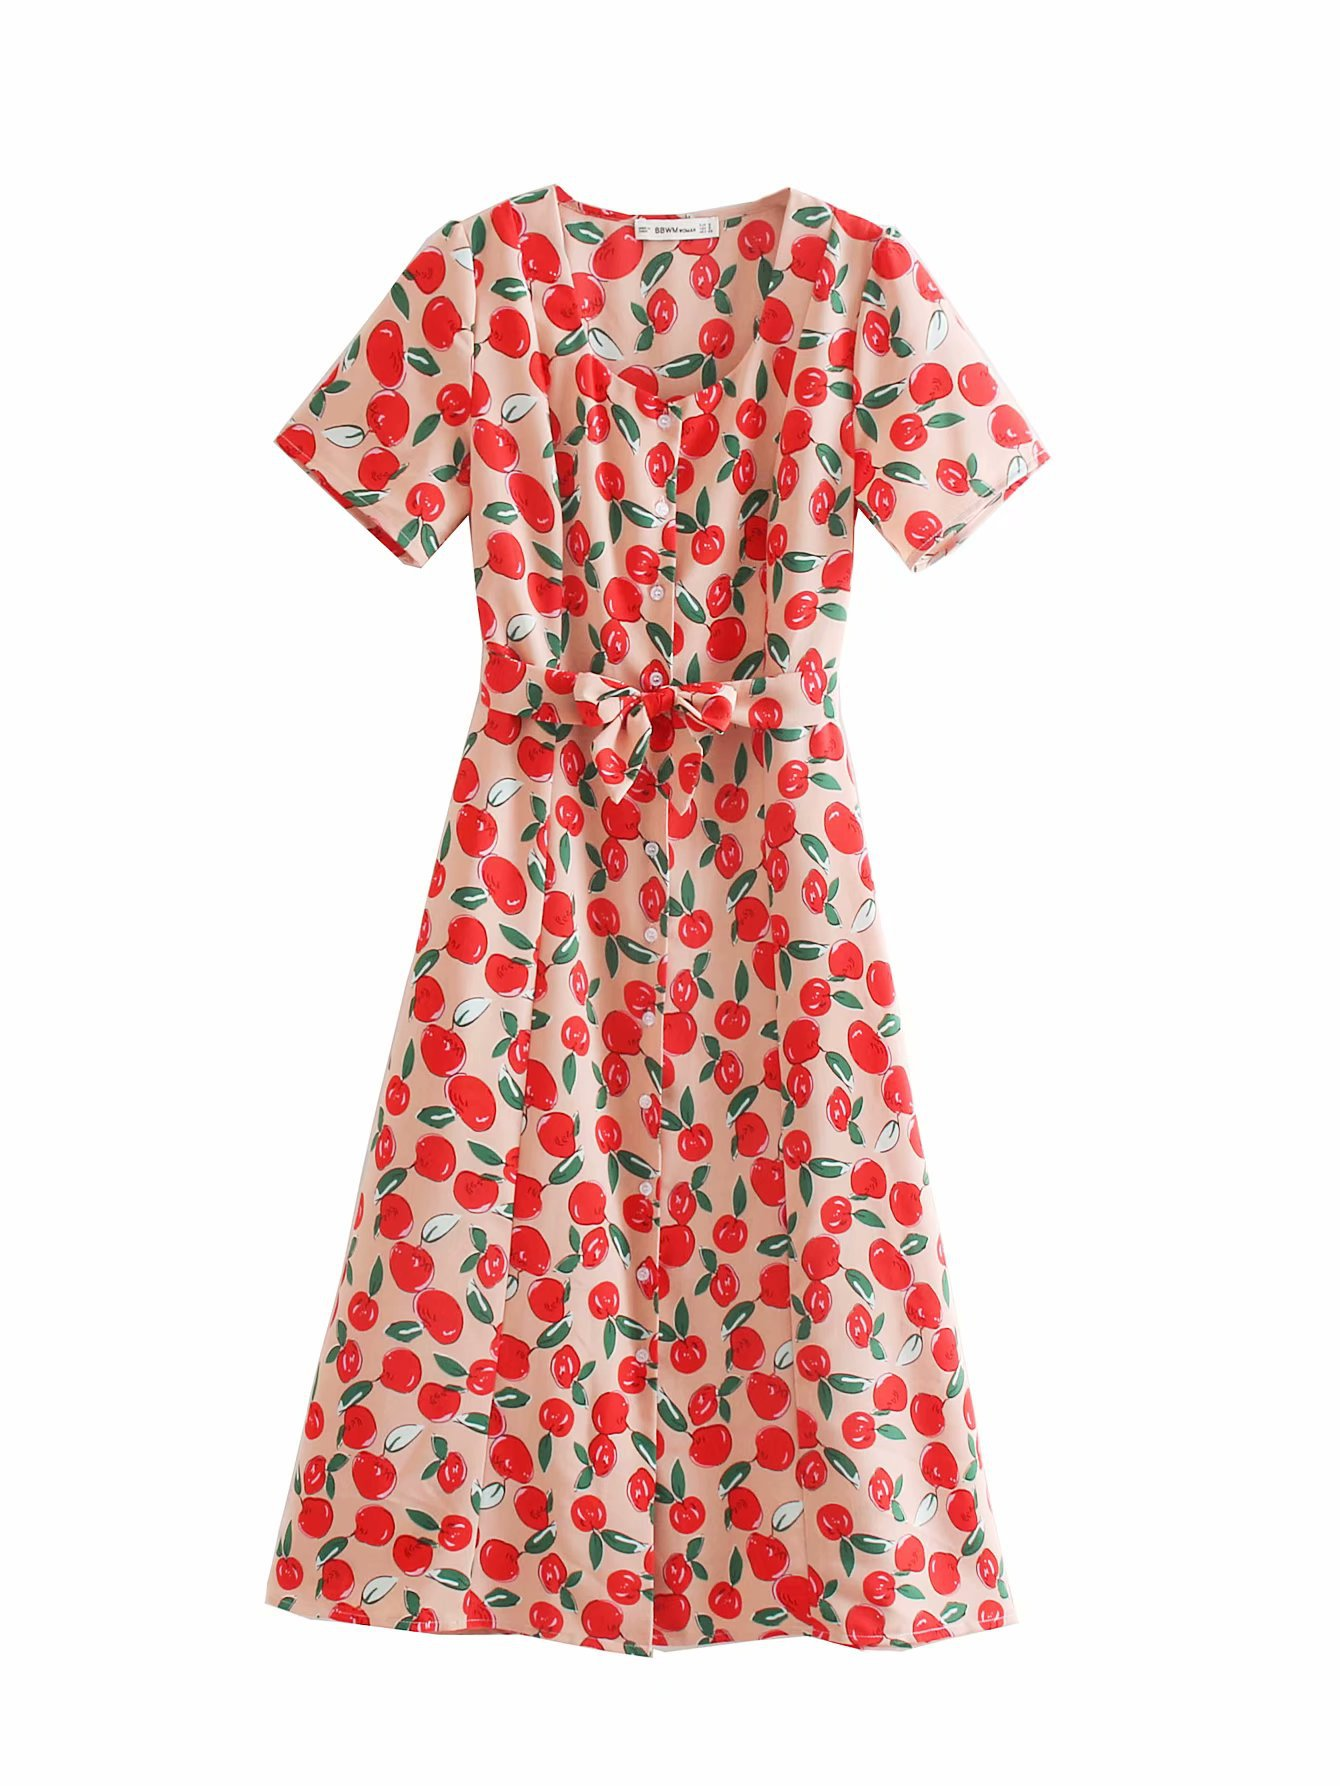 2019 Summer New Style WOMEN'S Dress V-neck Short Sleeve Lace-up Waist Hugging Slimming Single Breasted Fruit Floral Printed Dres